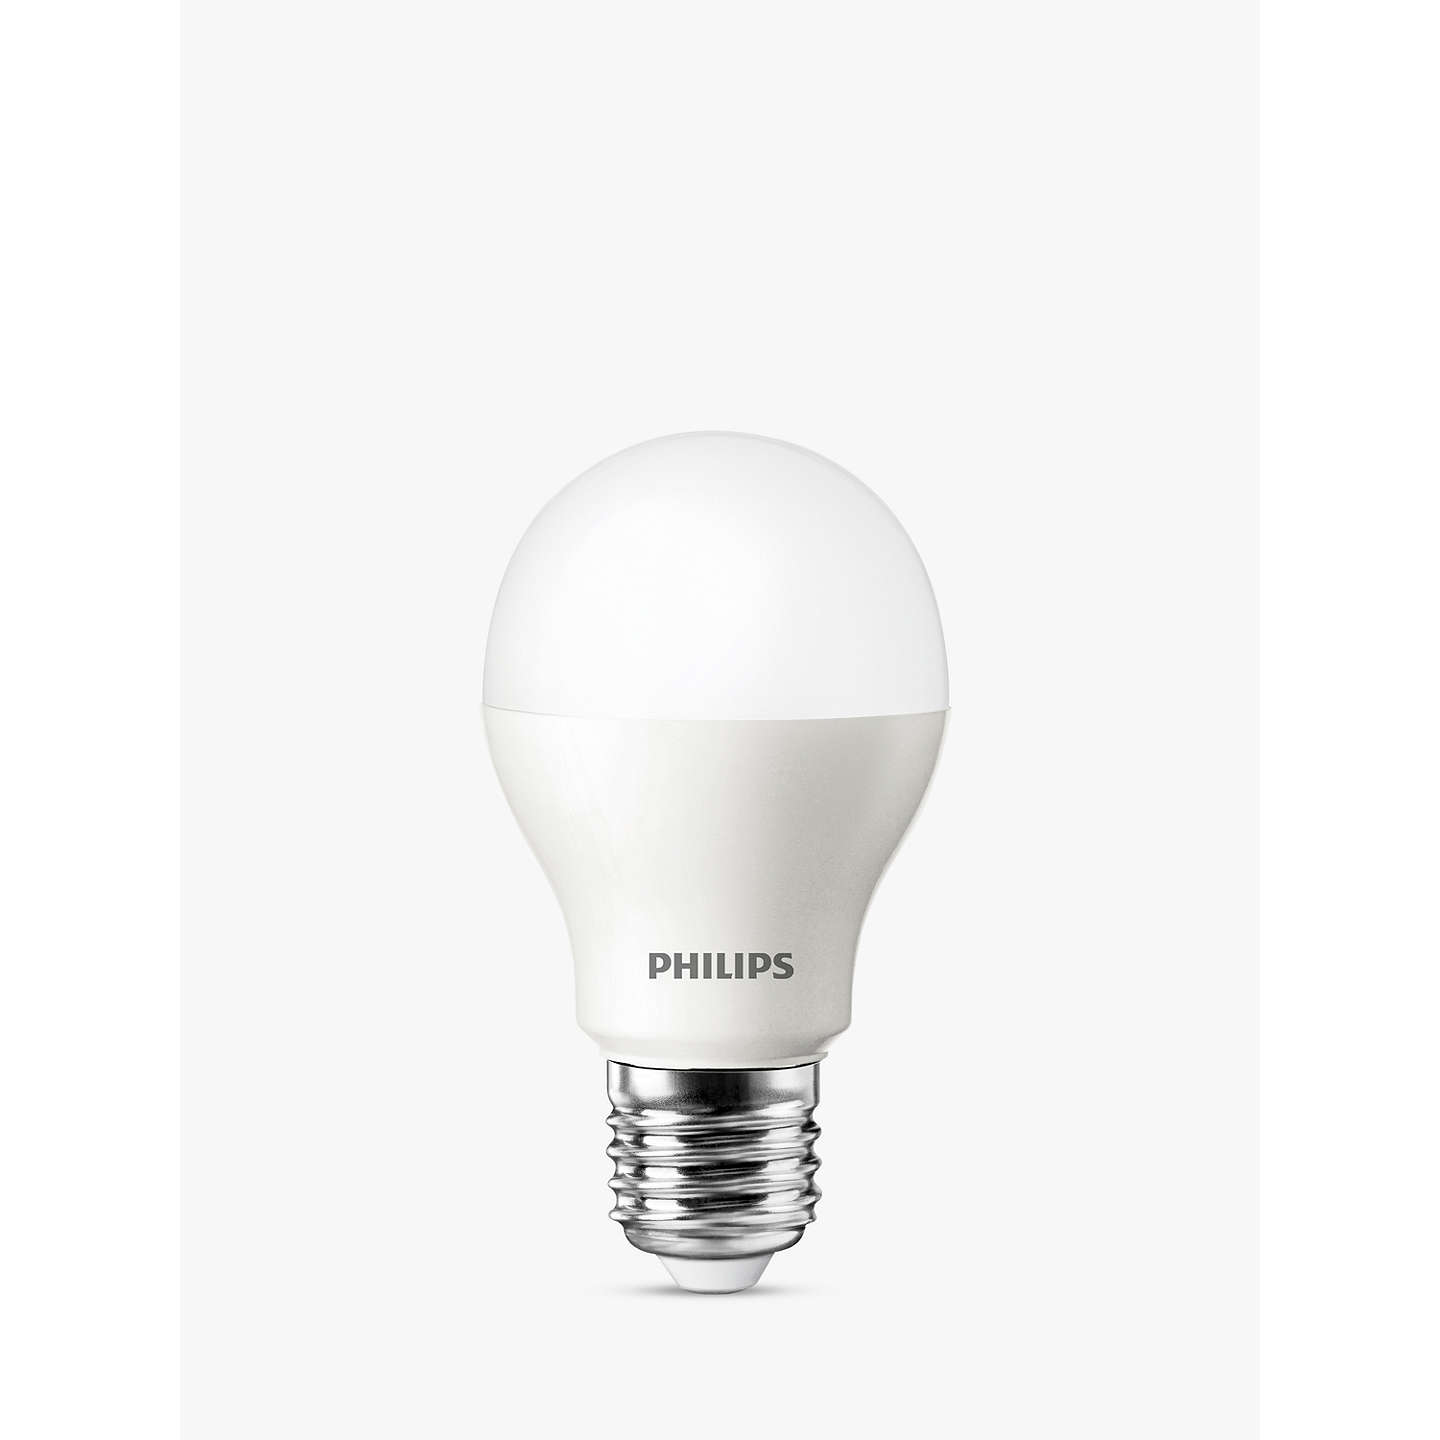 philips 5 5w es classic led light bulb frosted at john lewis. Black Bedroom Furniture Sets. Home Design Ideas